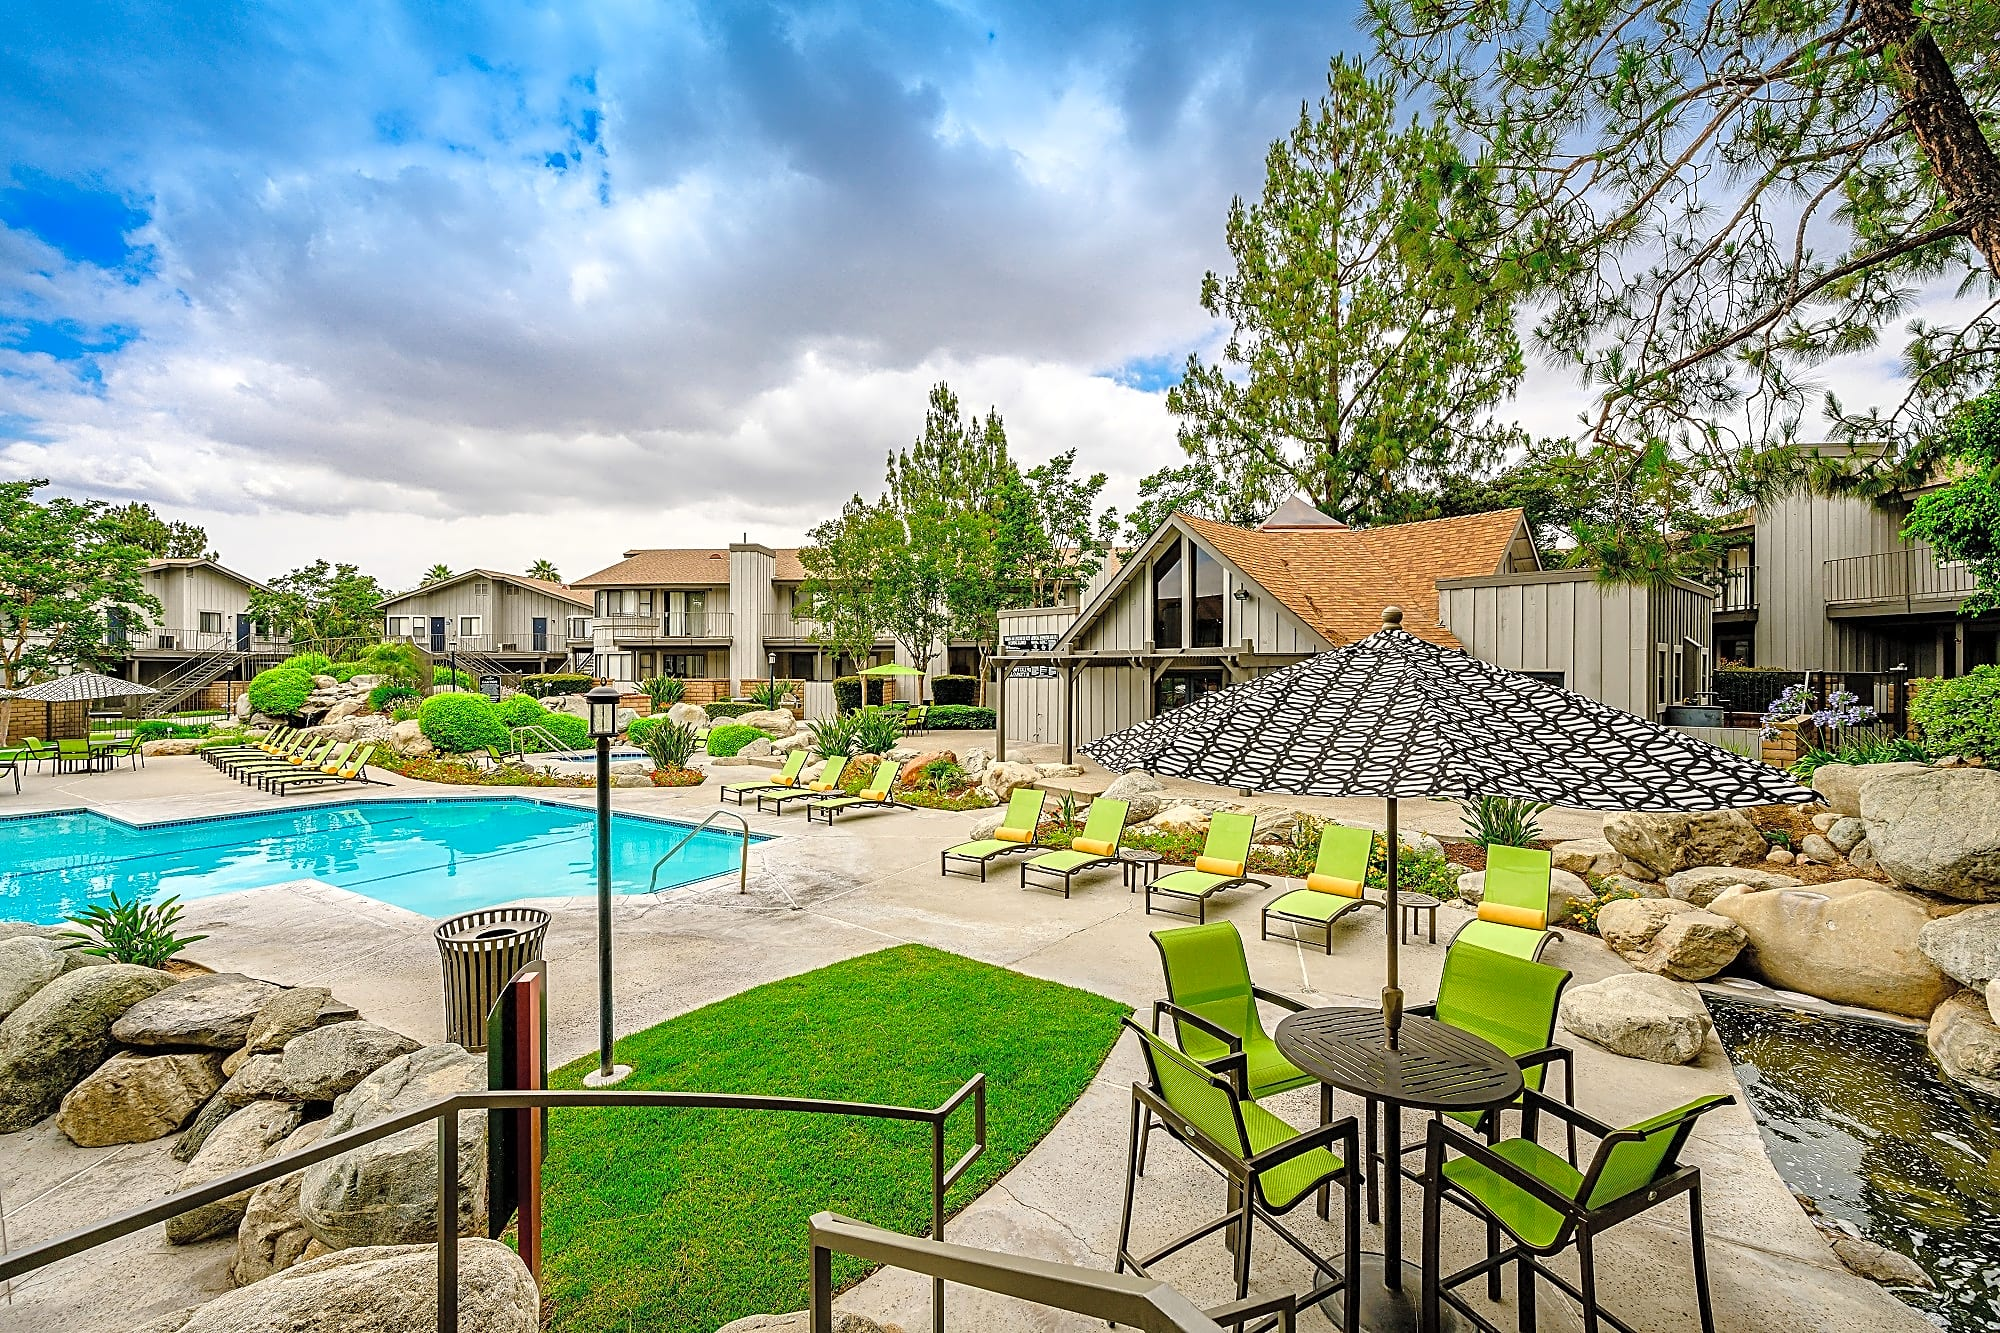 Apartments Near LLU Boulder Creek Apartments for Loma Linda University Students in Loma Linda, CA